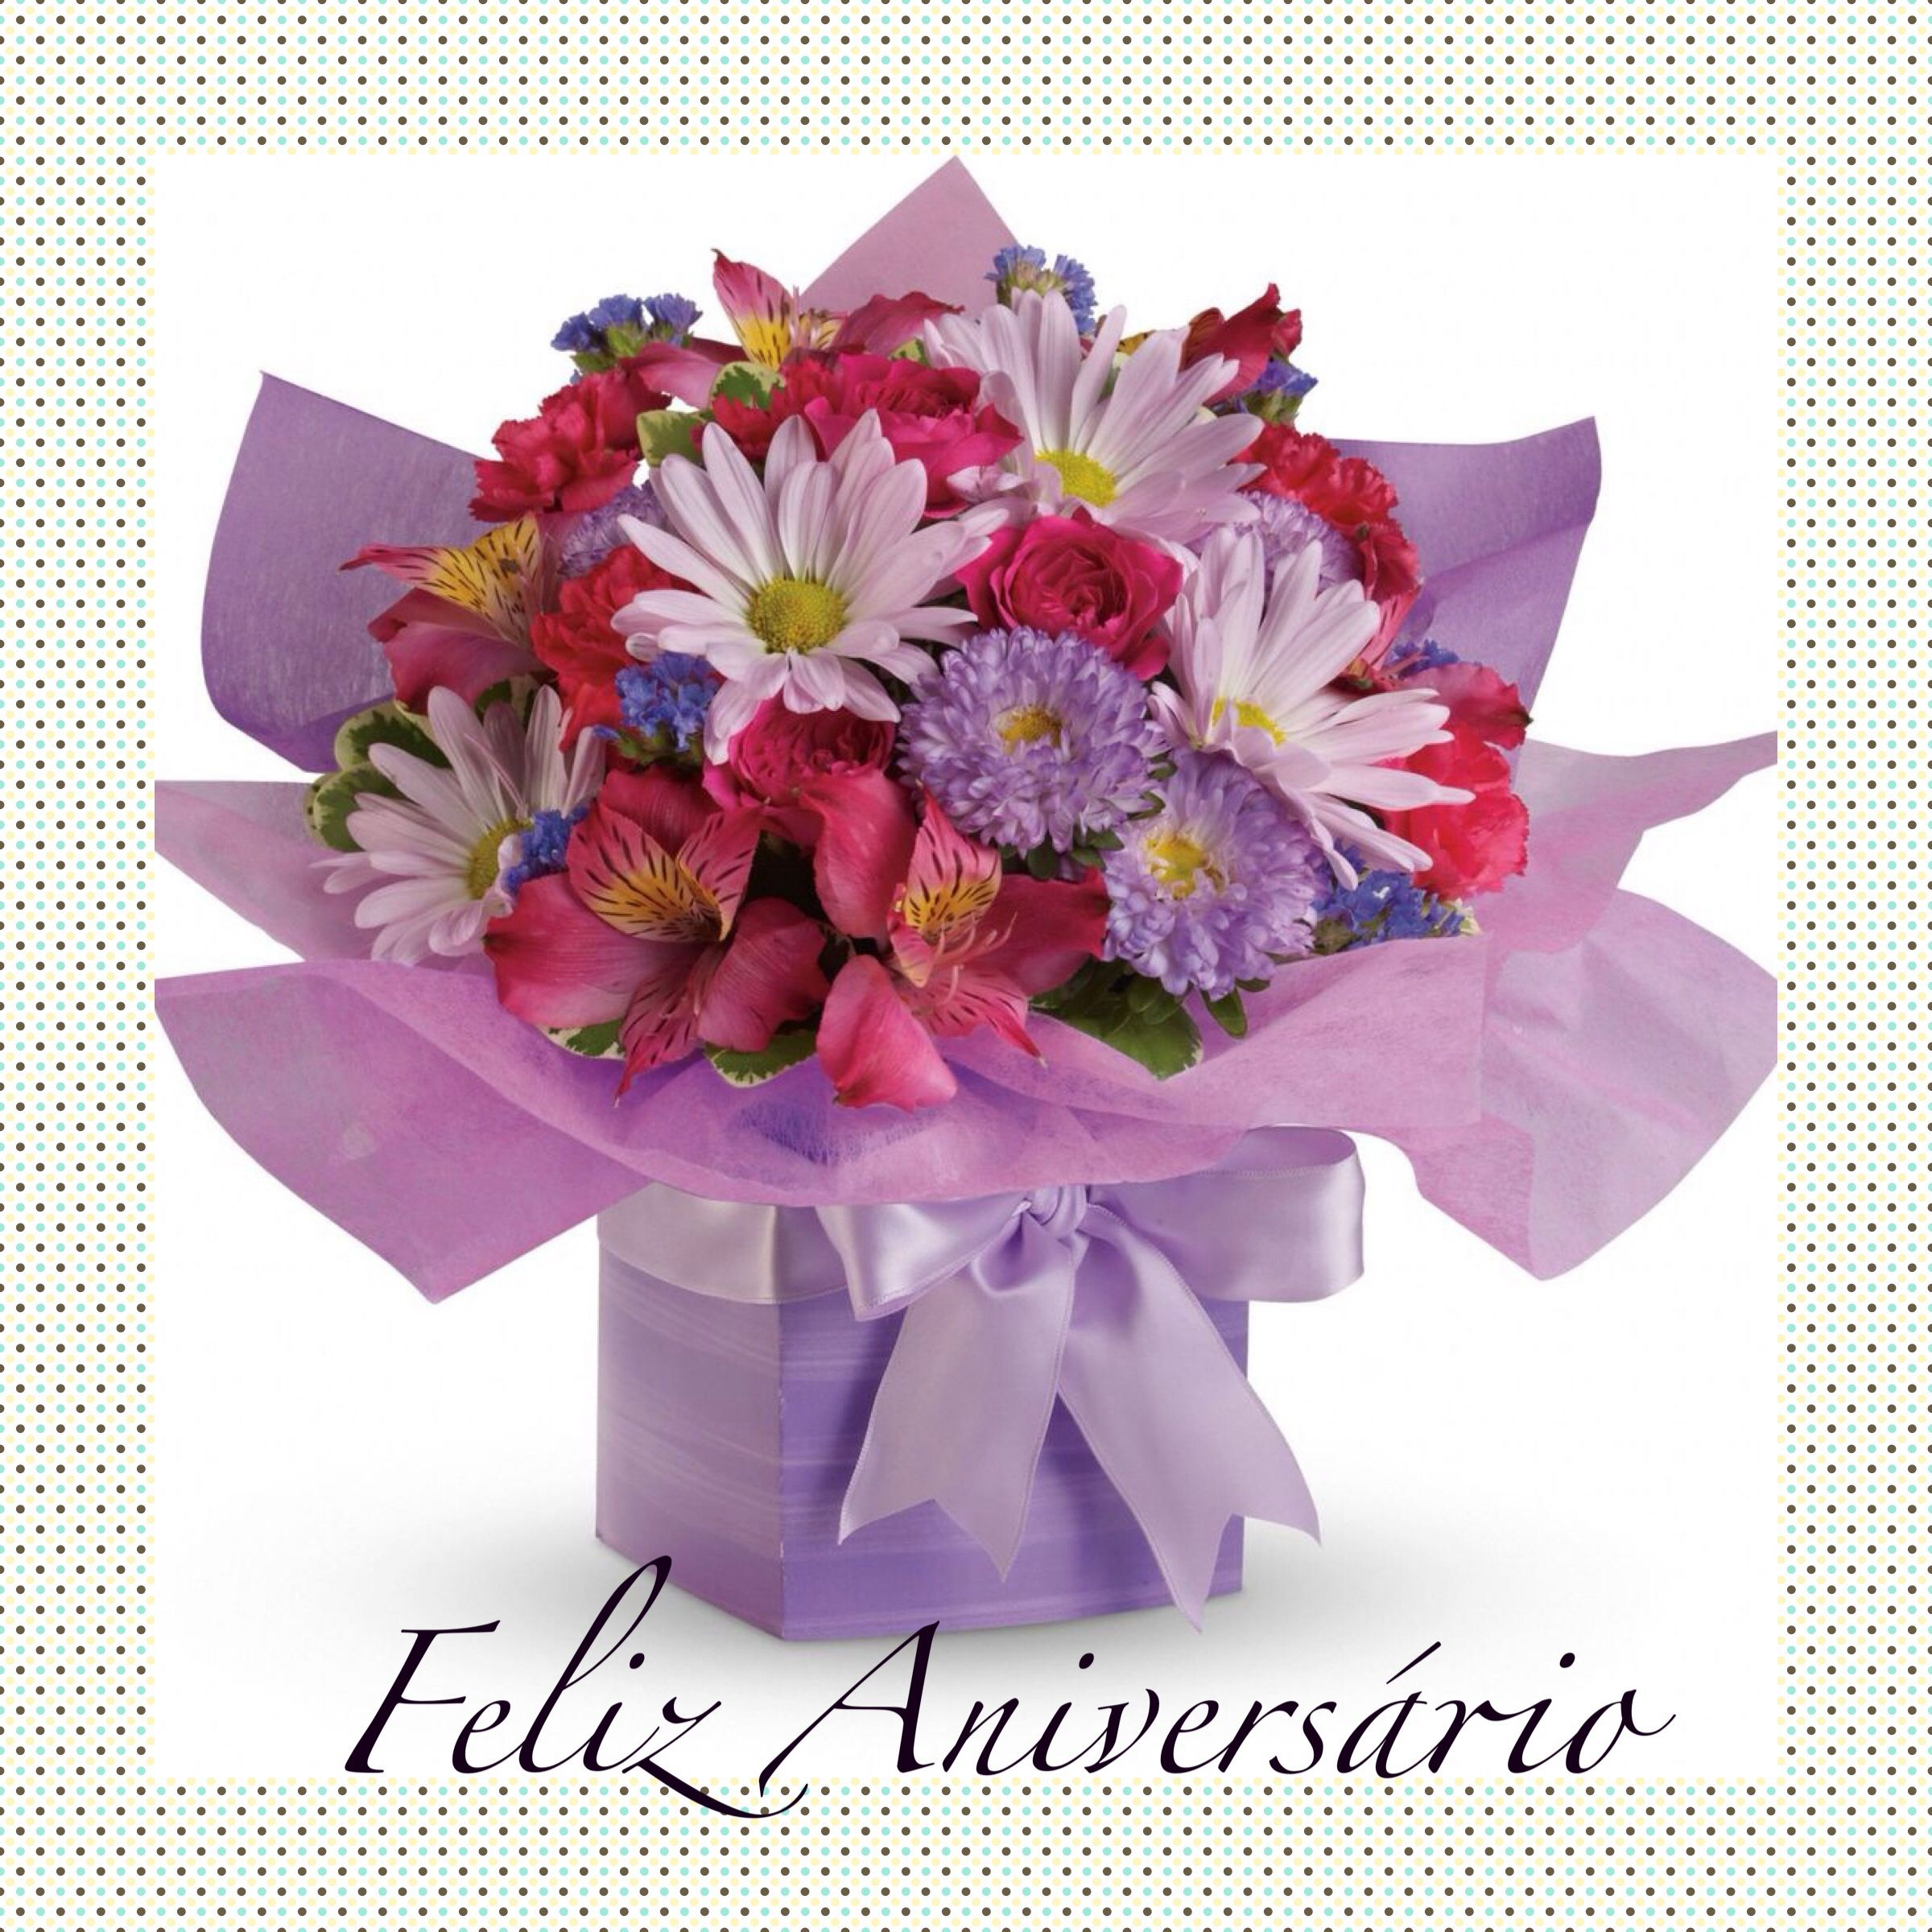 Feliz aniversrio gardening pinterest flower arrangements this pretty purple present comes with a beautiful surprise a lovely bouquet of flowers thats perfectly arranged and wrapped to look like a present izmirmasajfo